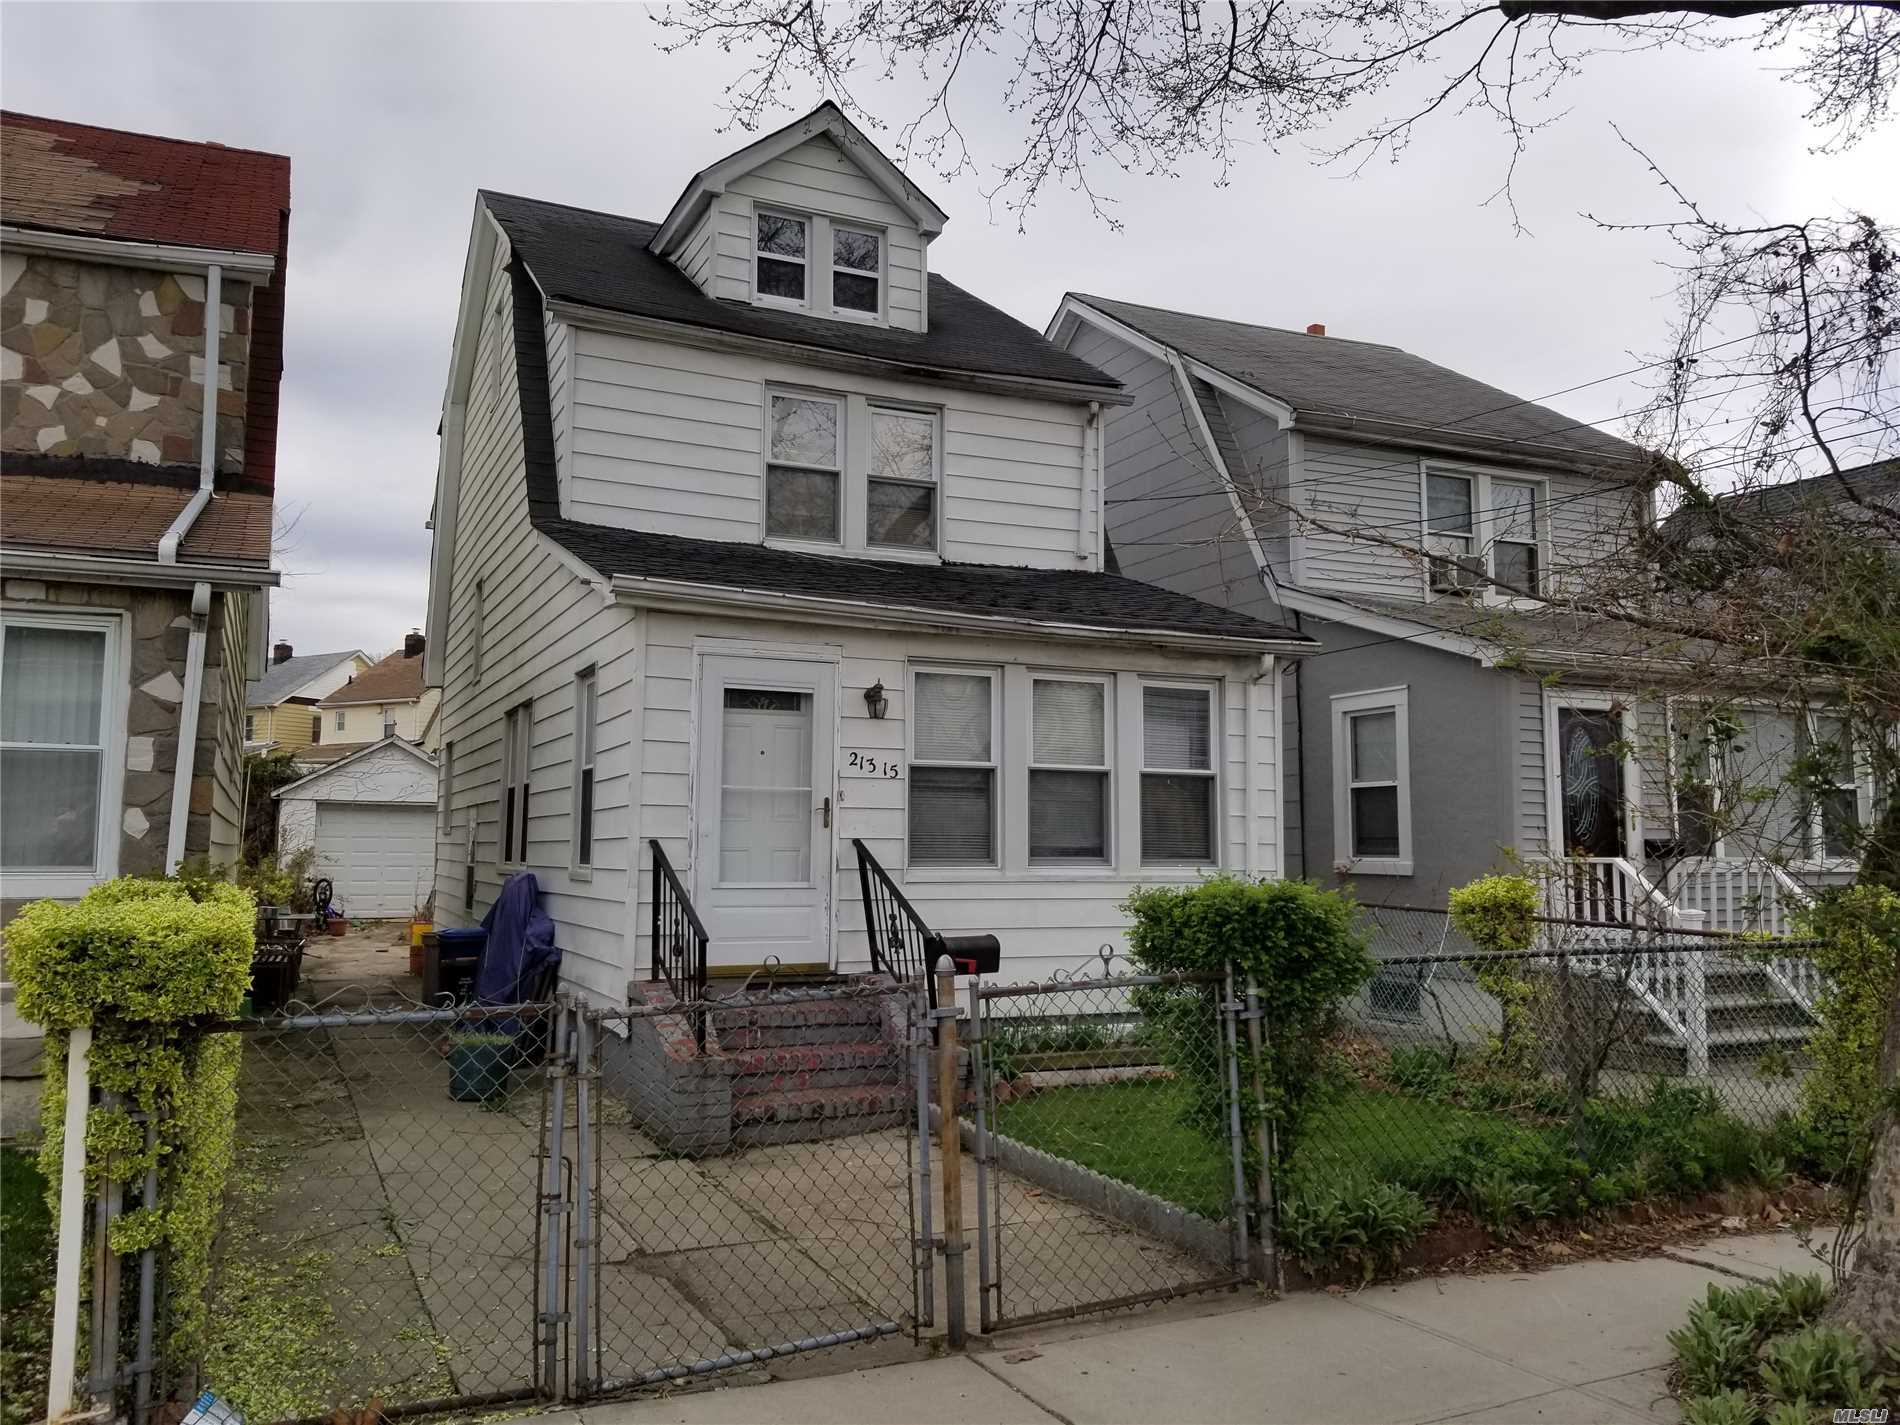 Great home with potential. This property is being sold As Is. May require cash or a renovation loan.